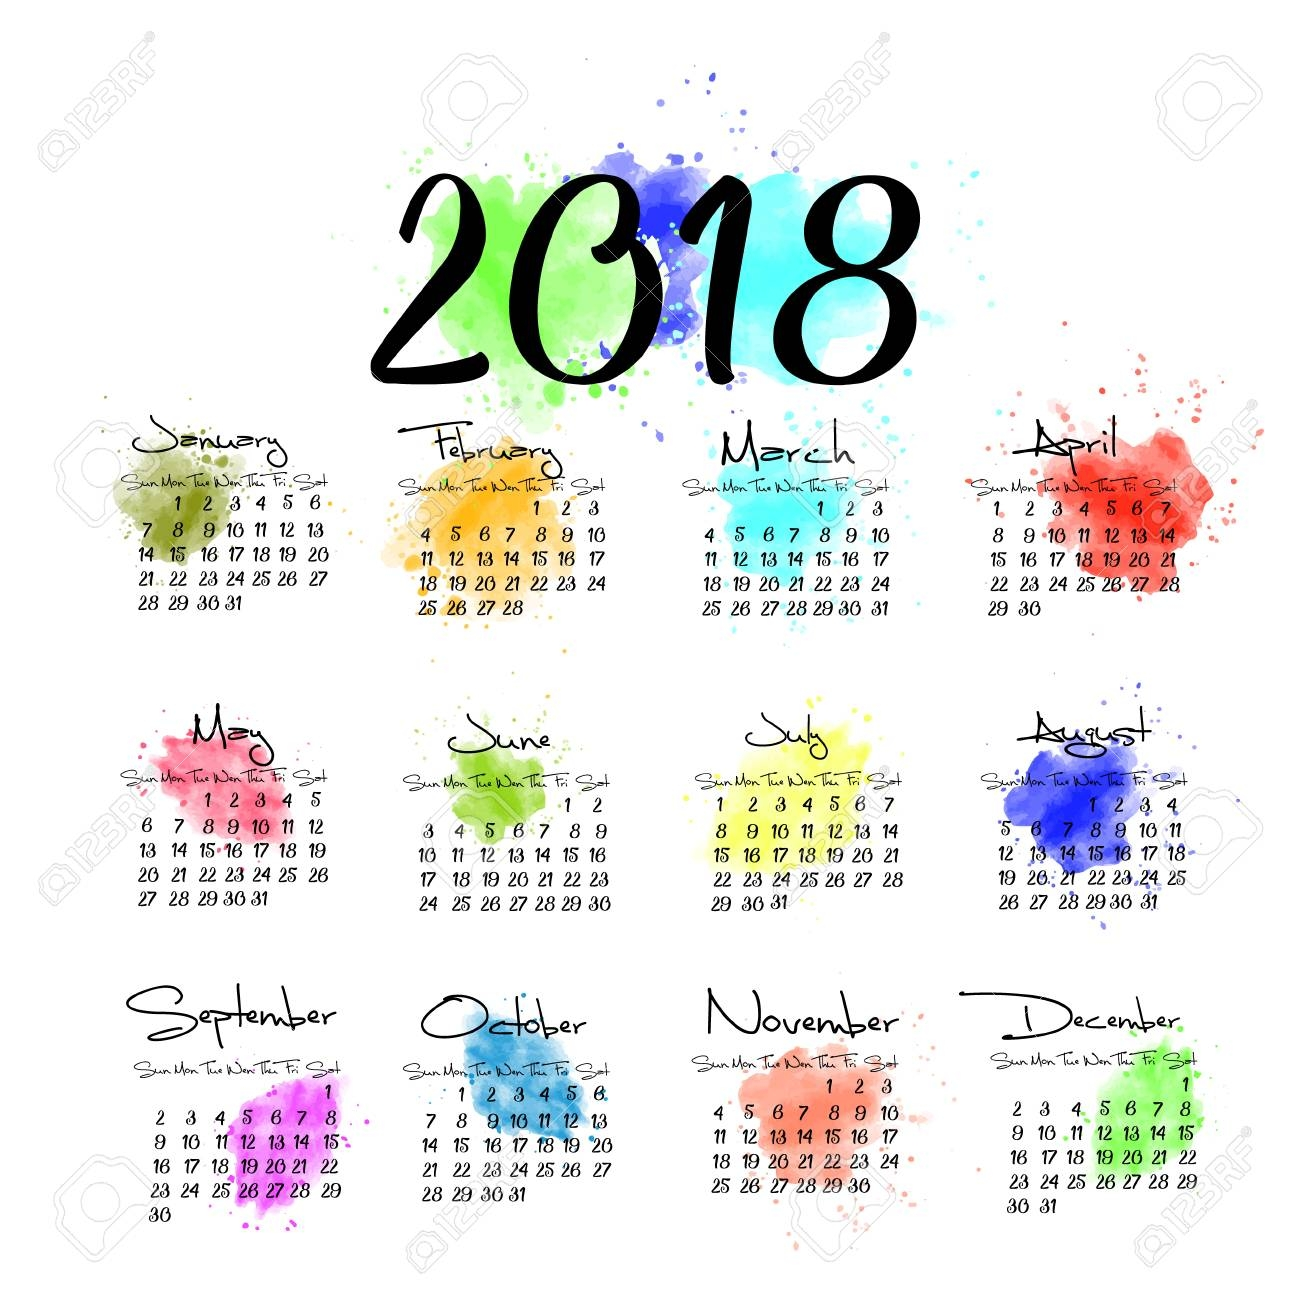 a scalable vector calendar for the year 2018 all on one page 2018 Calendar 12 Months On One Page erdferdf